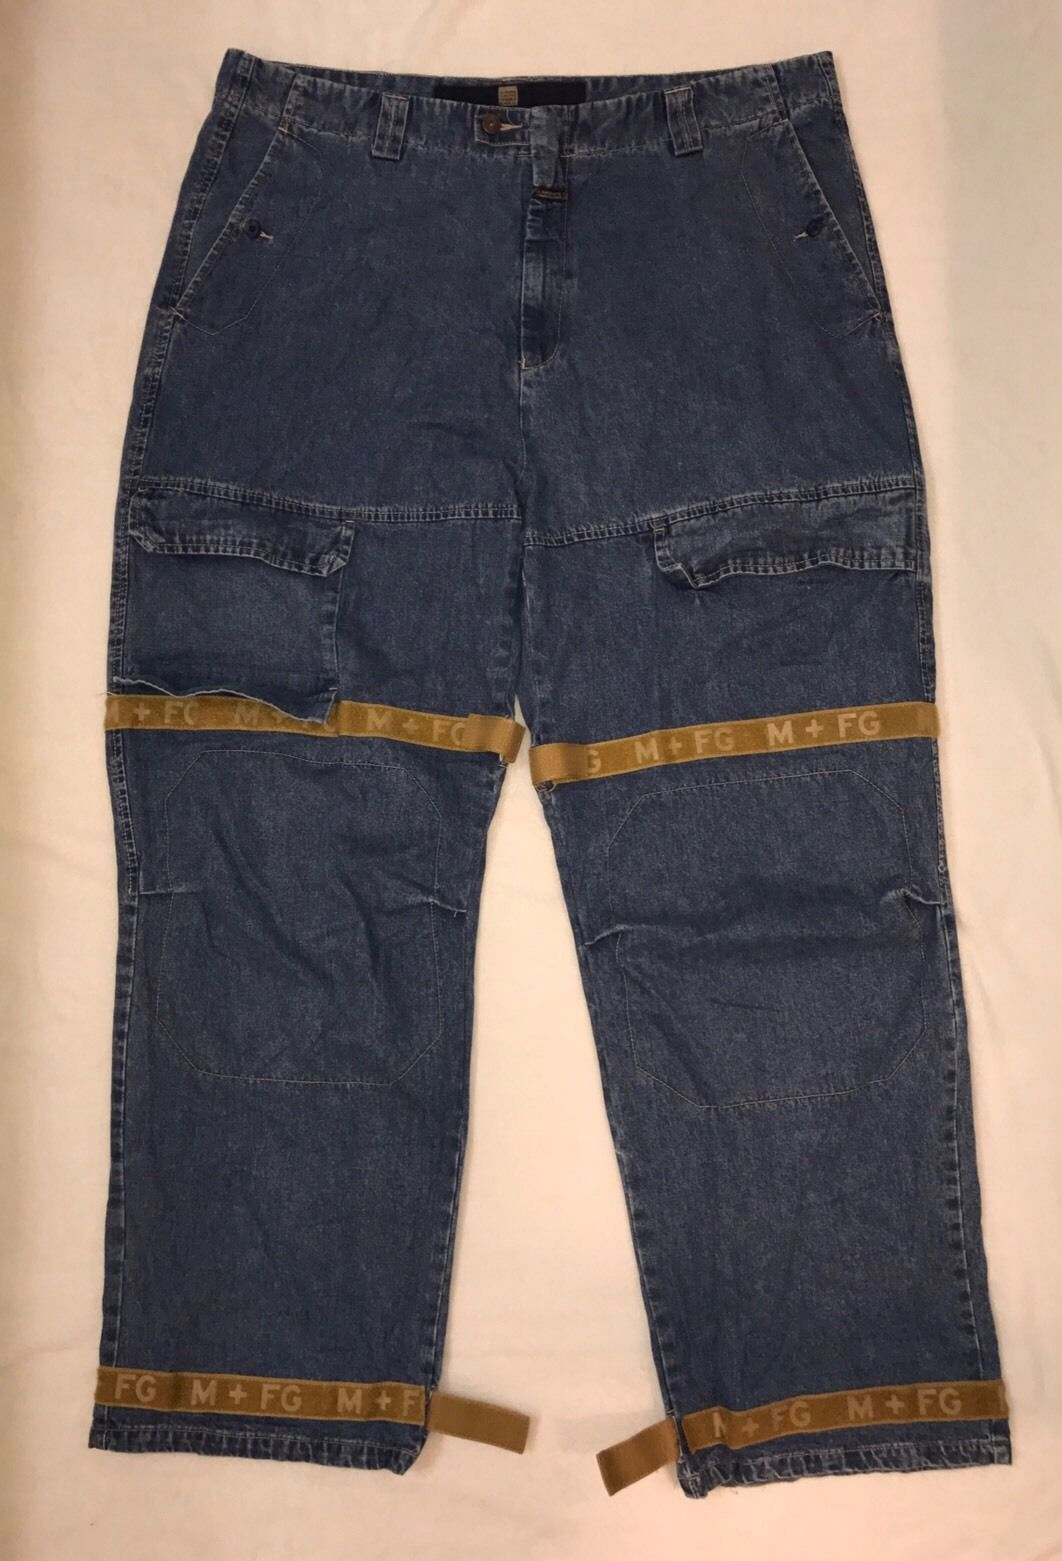 1ad62949 Marithe Francois Girbaud men 44 M /48 Jeans and 50 similar items. S l1600